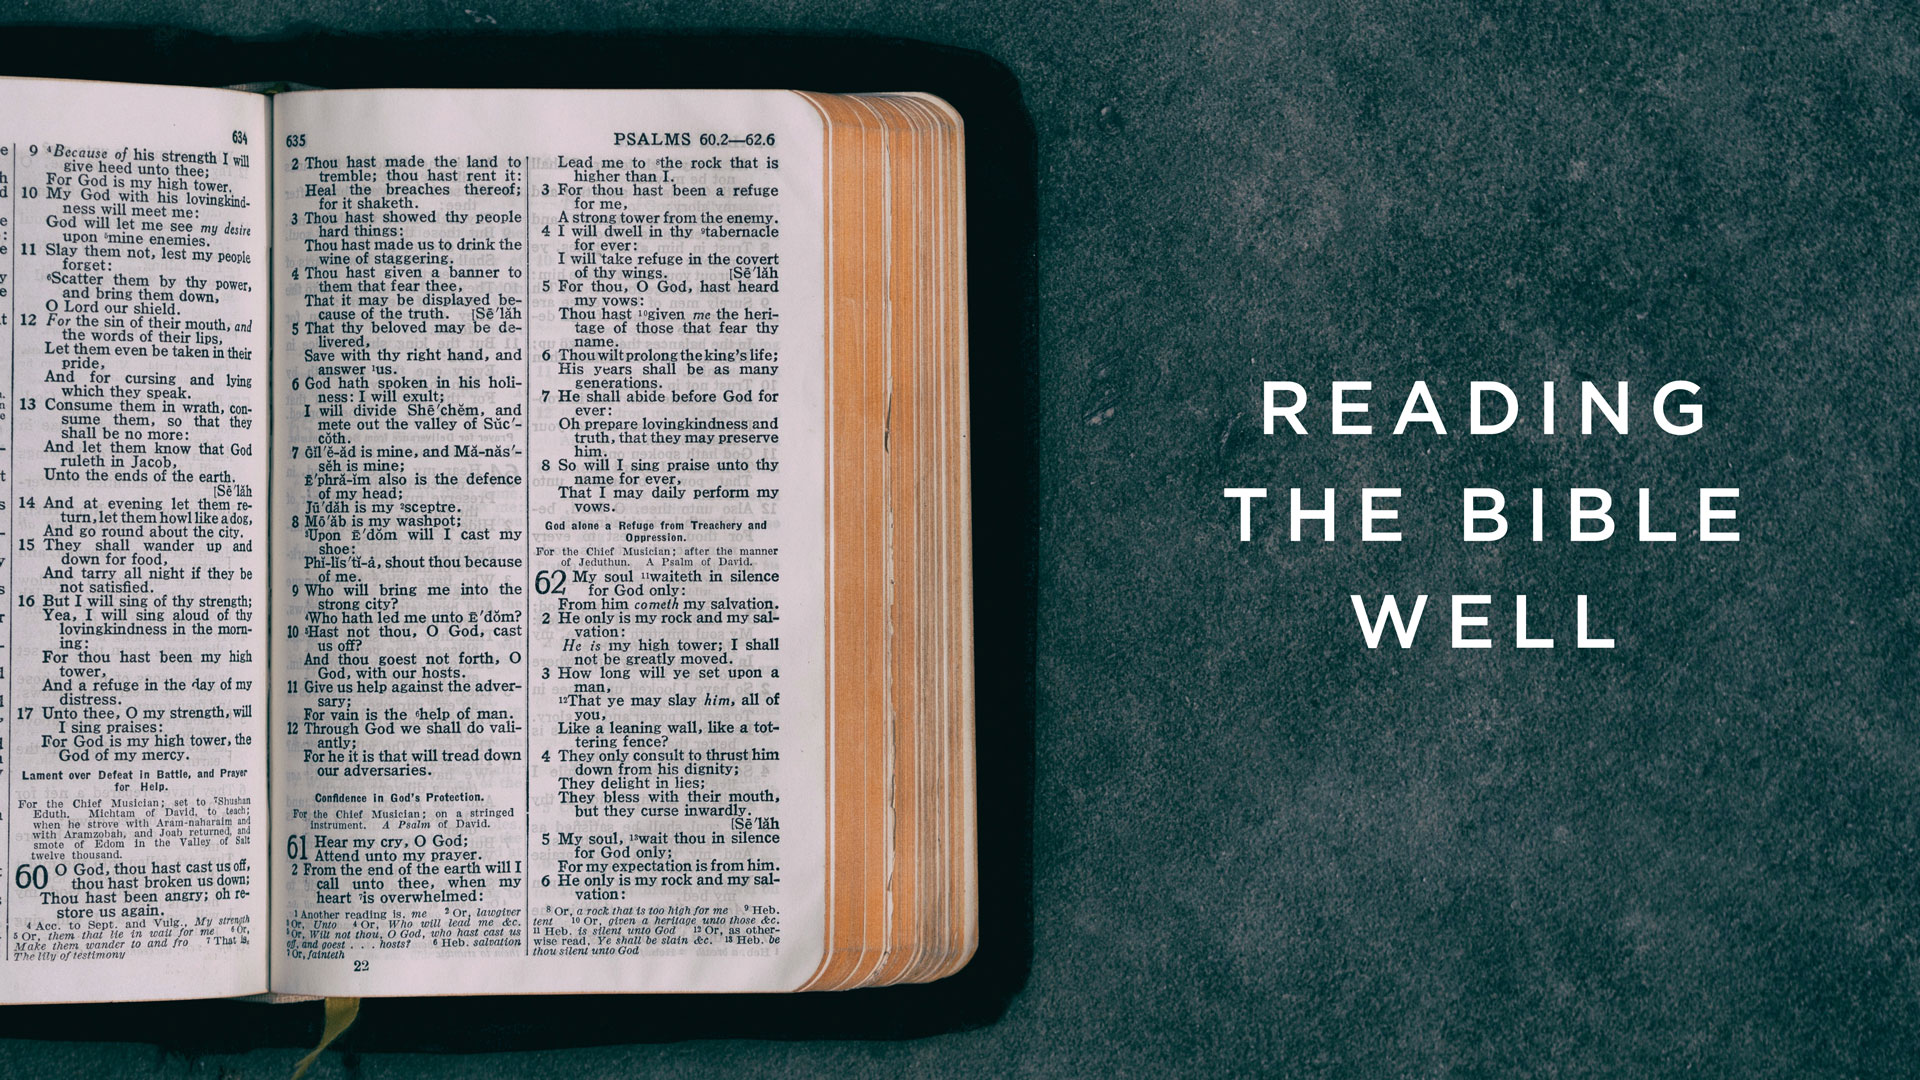 reading-bible-well-graphic.jpg